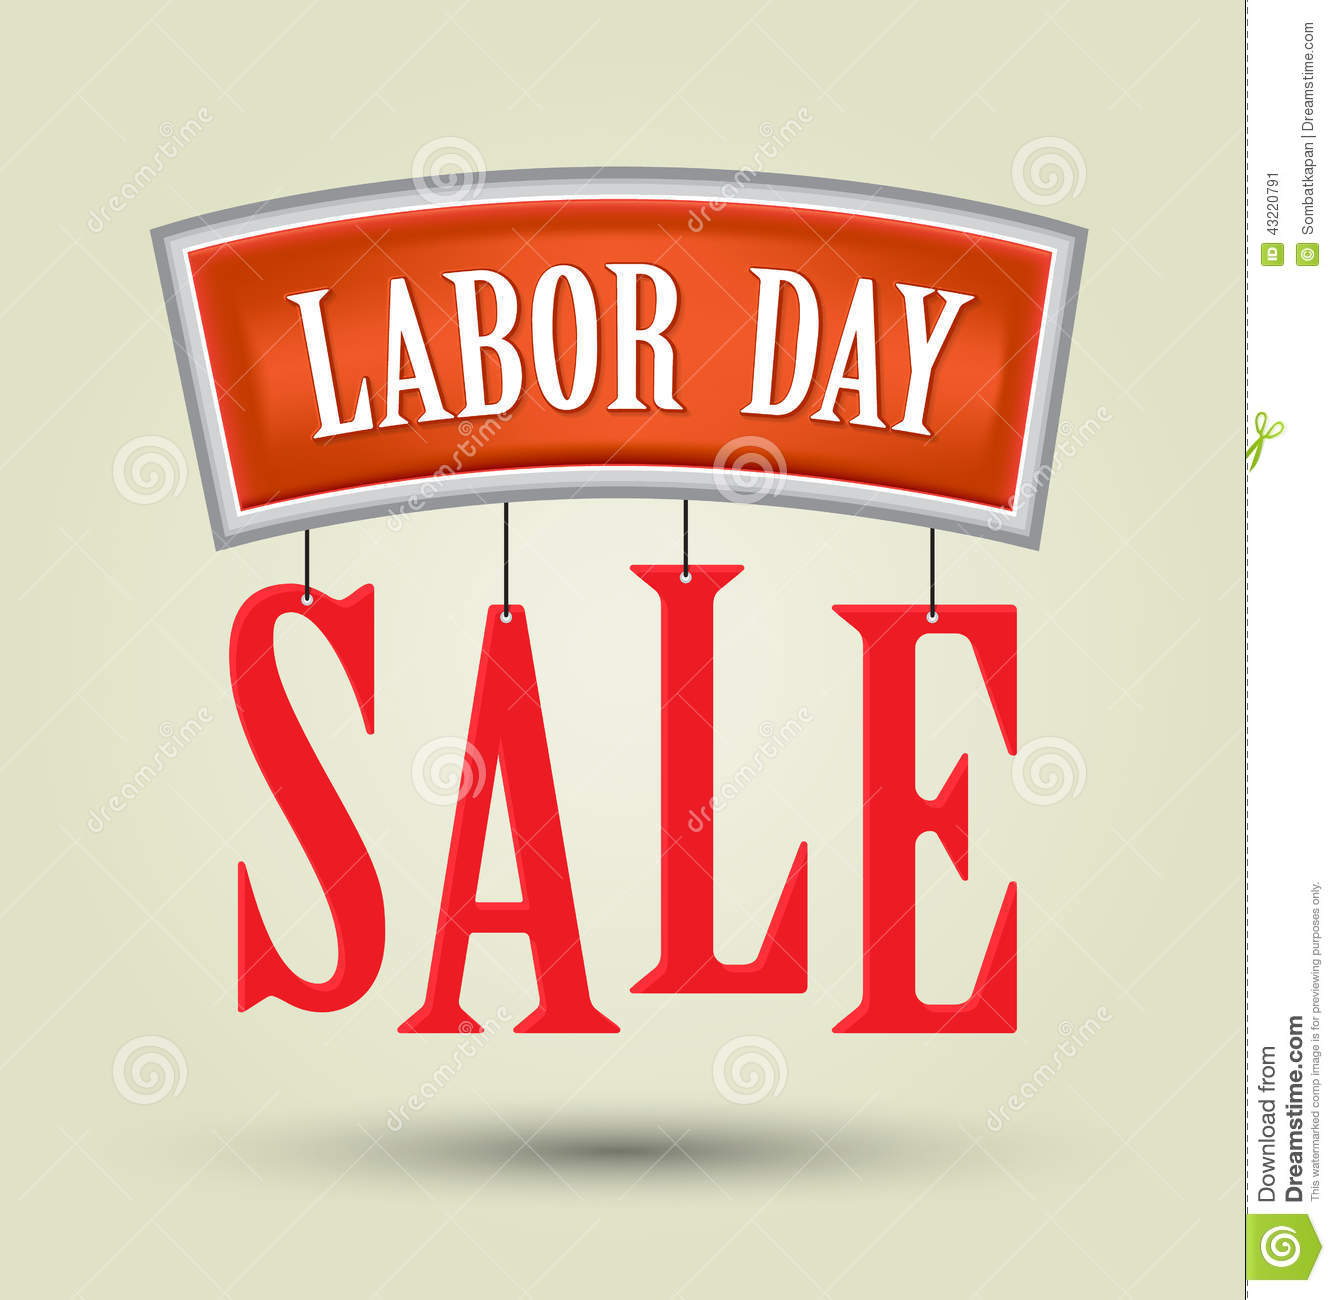 Labor Day Sale Text Stock Vector Illustration Of Chain 43220791